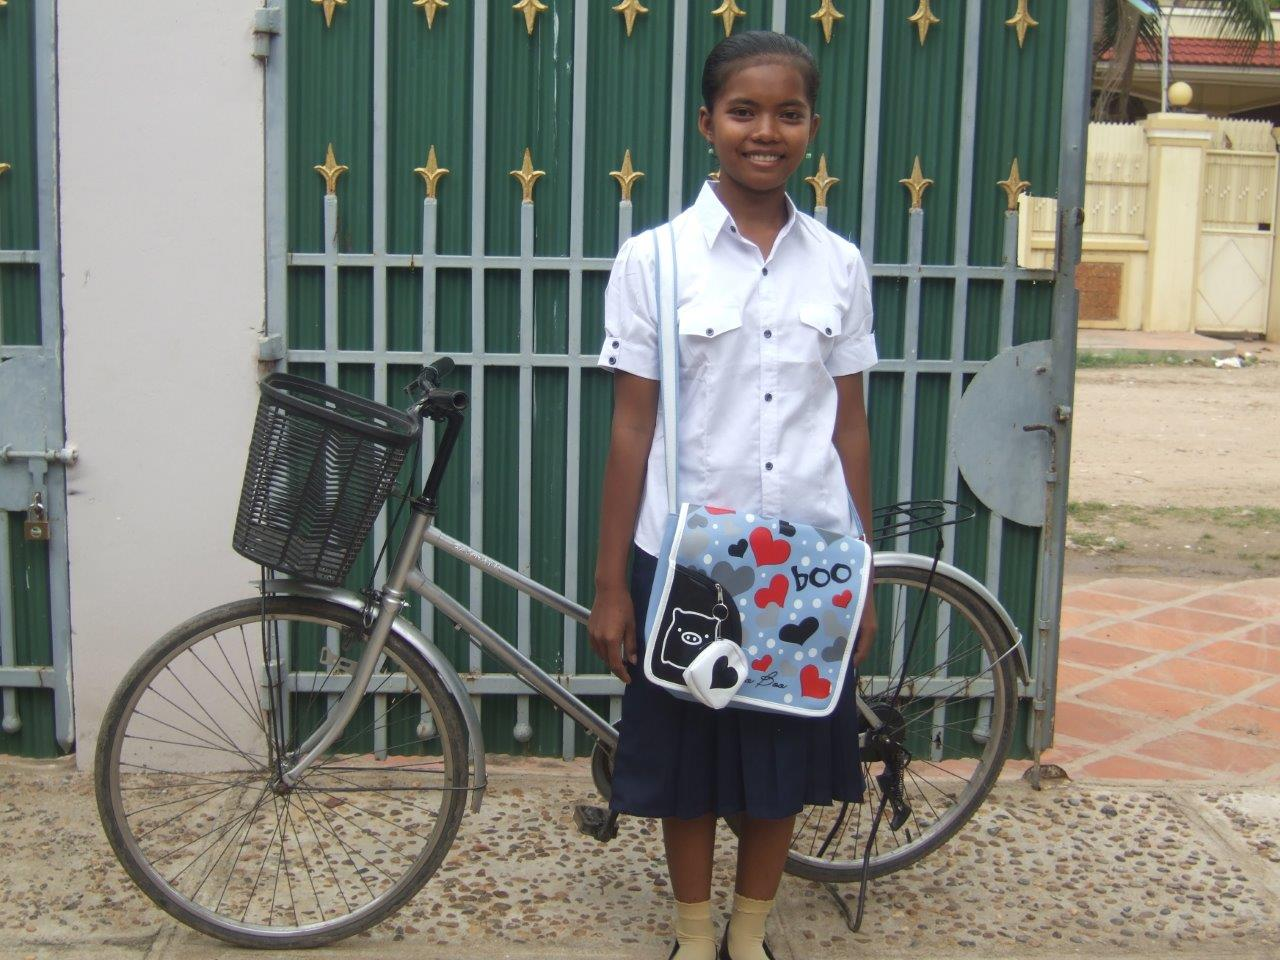 Vitcheka, our first sponsored student 9 years ago